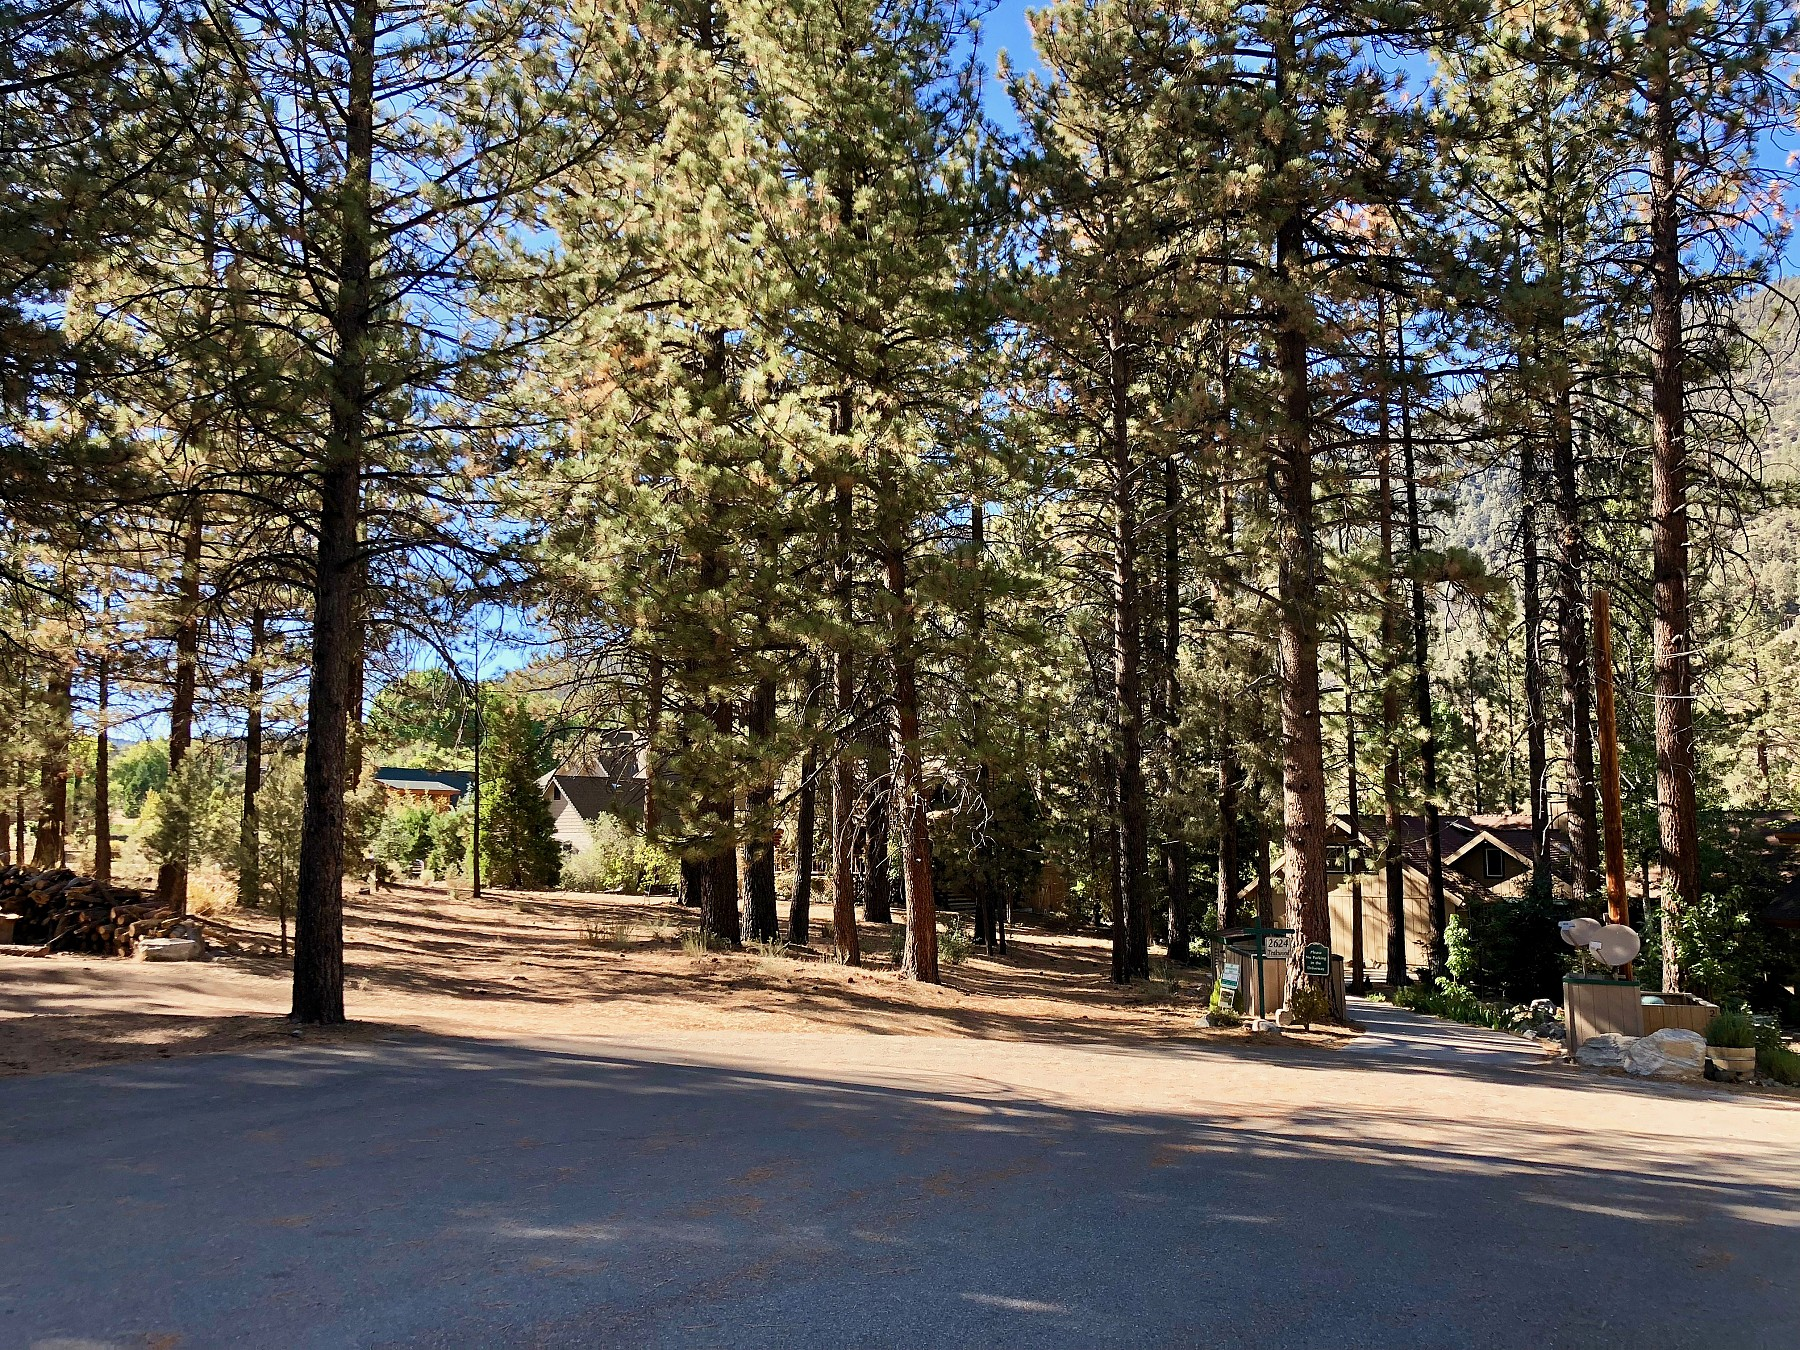 2617 TEAKWOOD Court, Pine Mountain Club, CA 93222